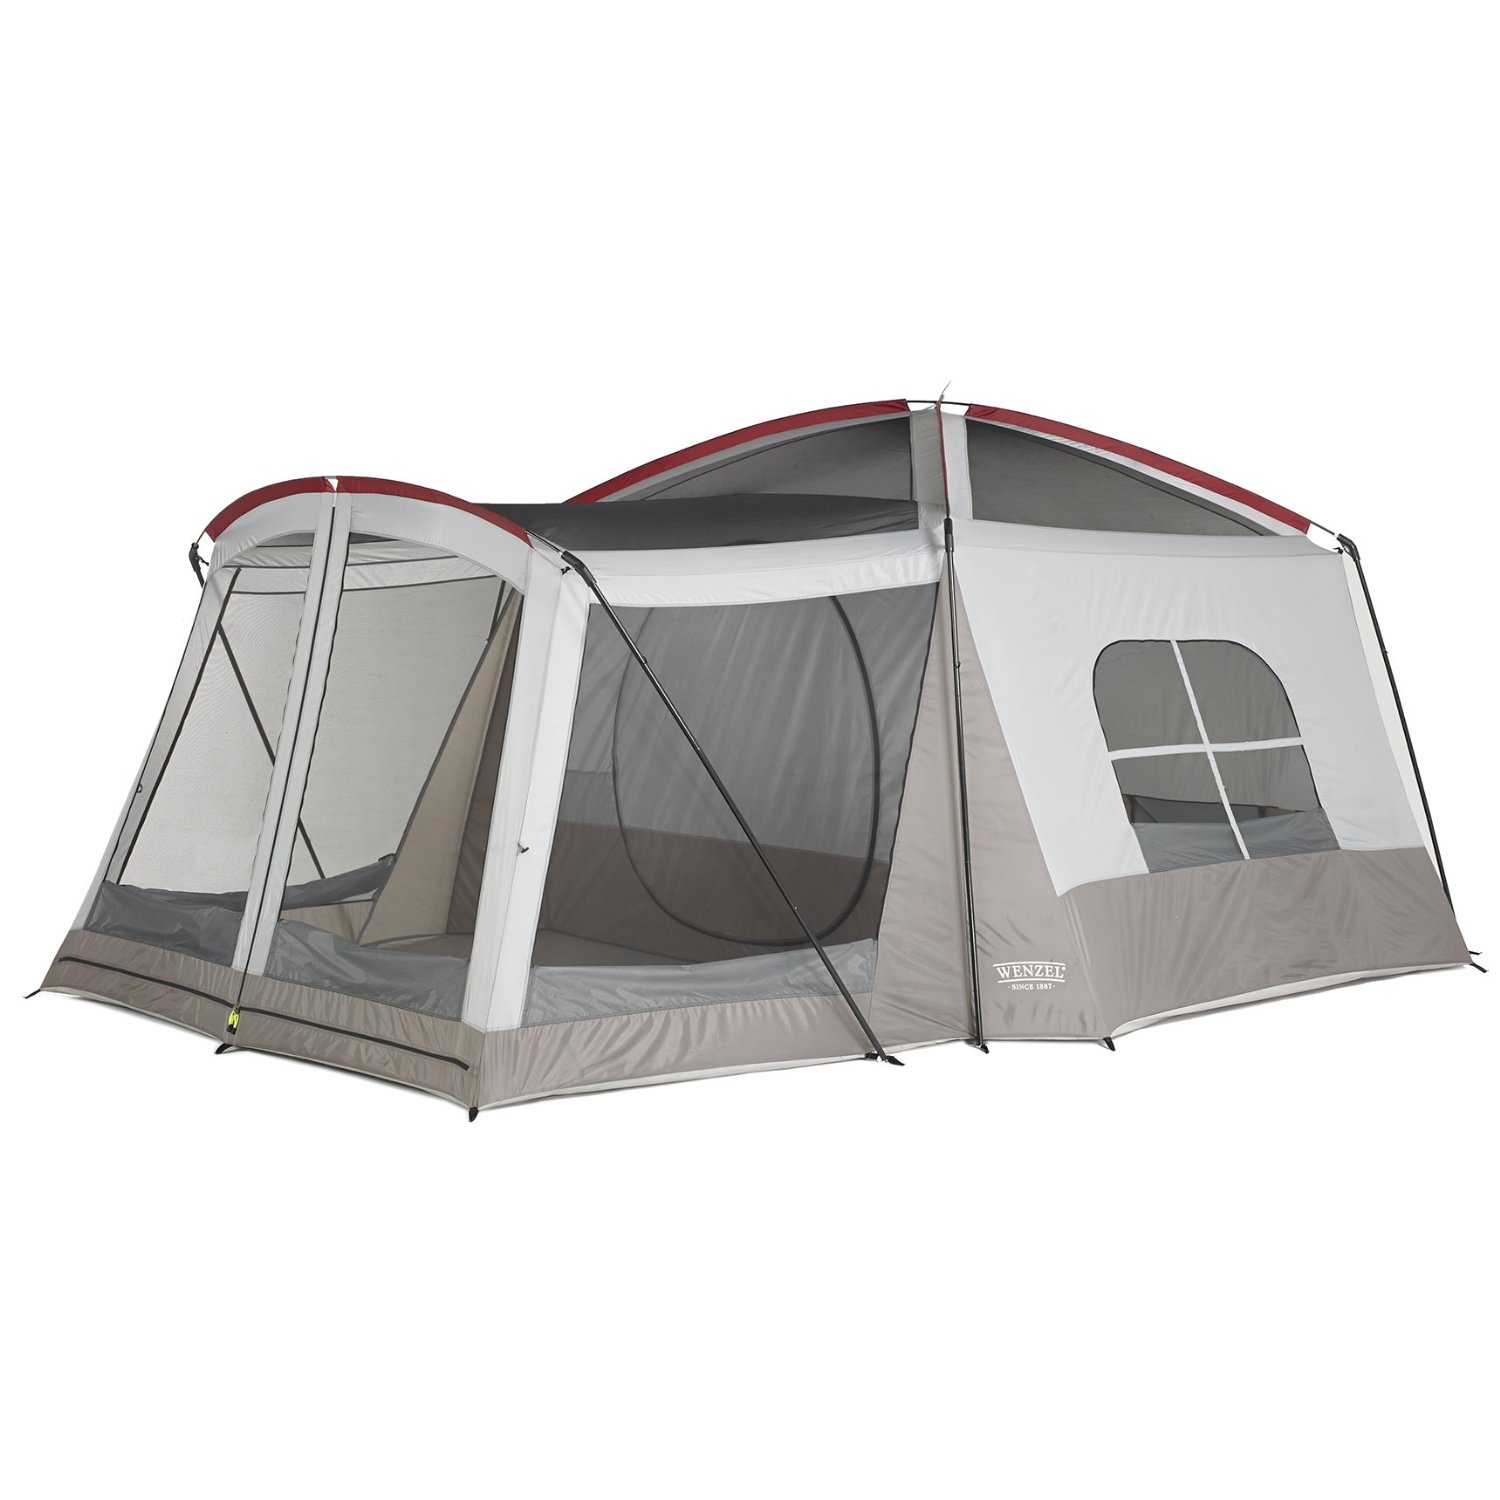 Biggest and Best Tents | .onecrazyhouse.com  sc 1 st  One Crazy House : tents at big 5 - memphite.com